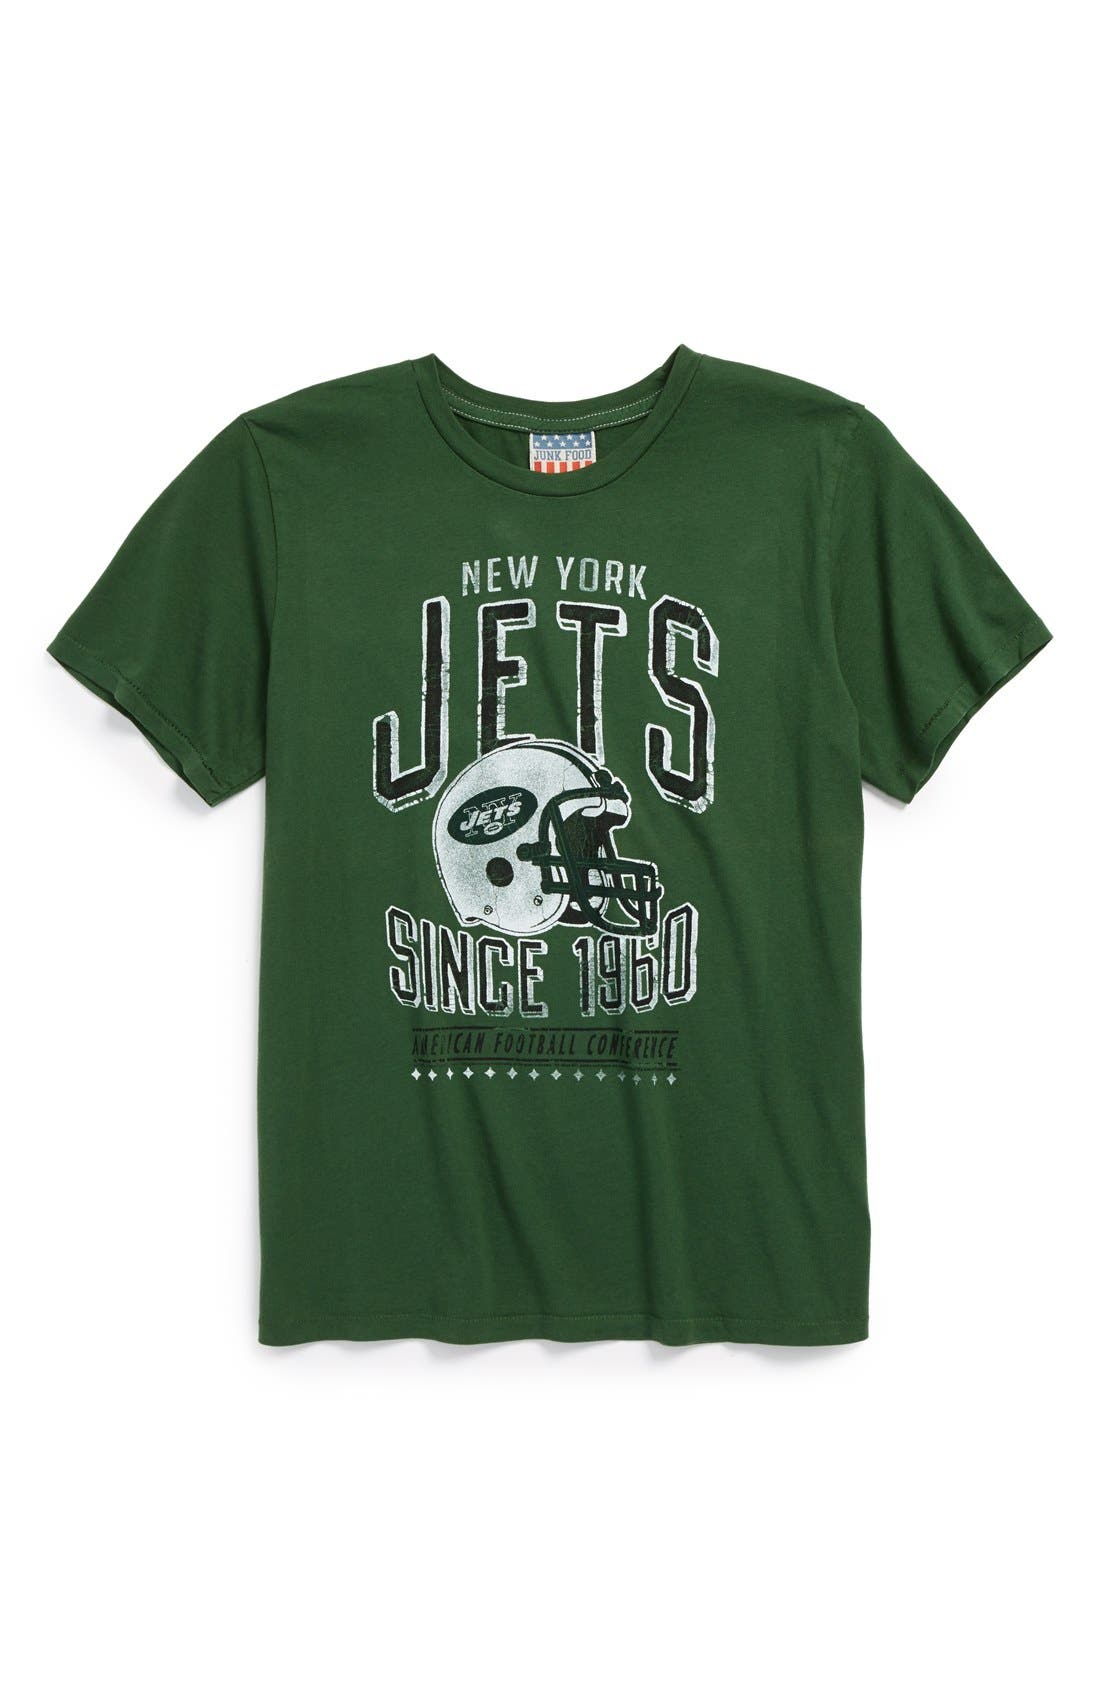 Alternate Image 1 Selected - Junk Food 'New York Jets - NFL' Graphic T-Shirt (Little Boys & Big Boys)